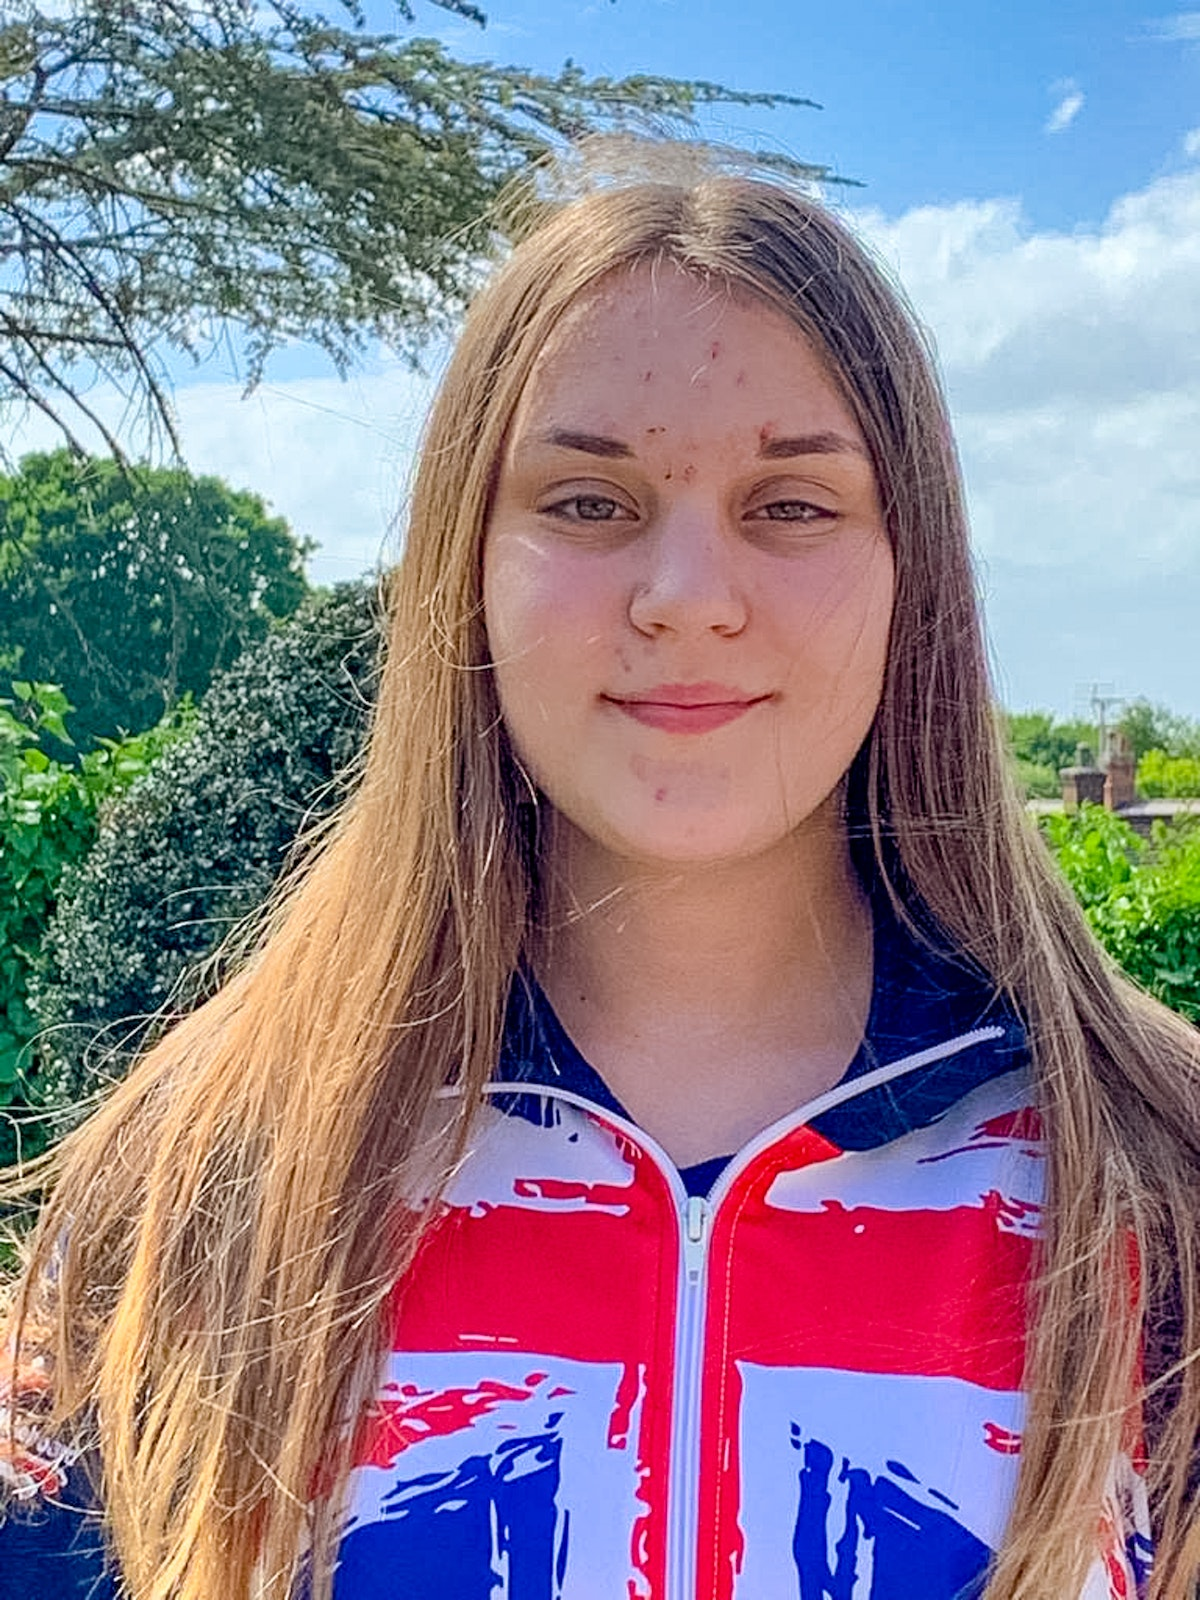 Chelsea Willis at the 2020 British Wakeboard Squad